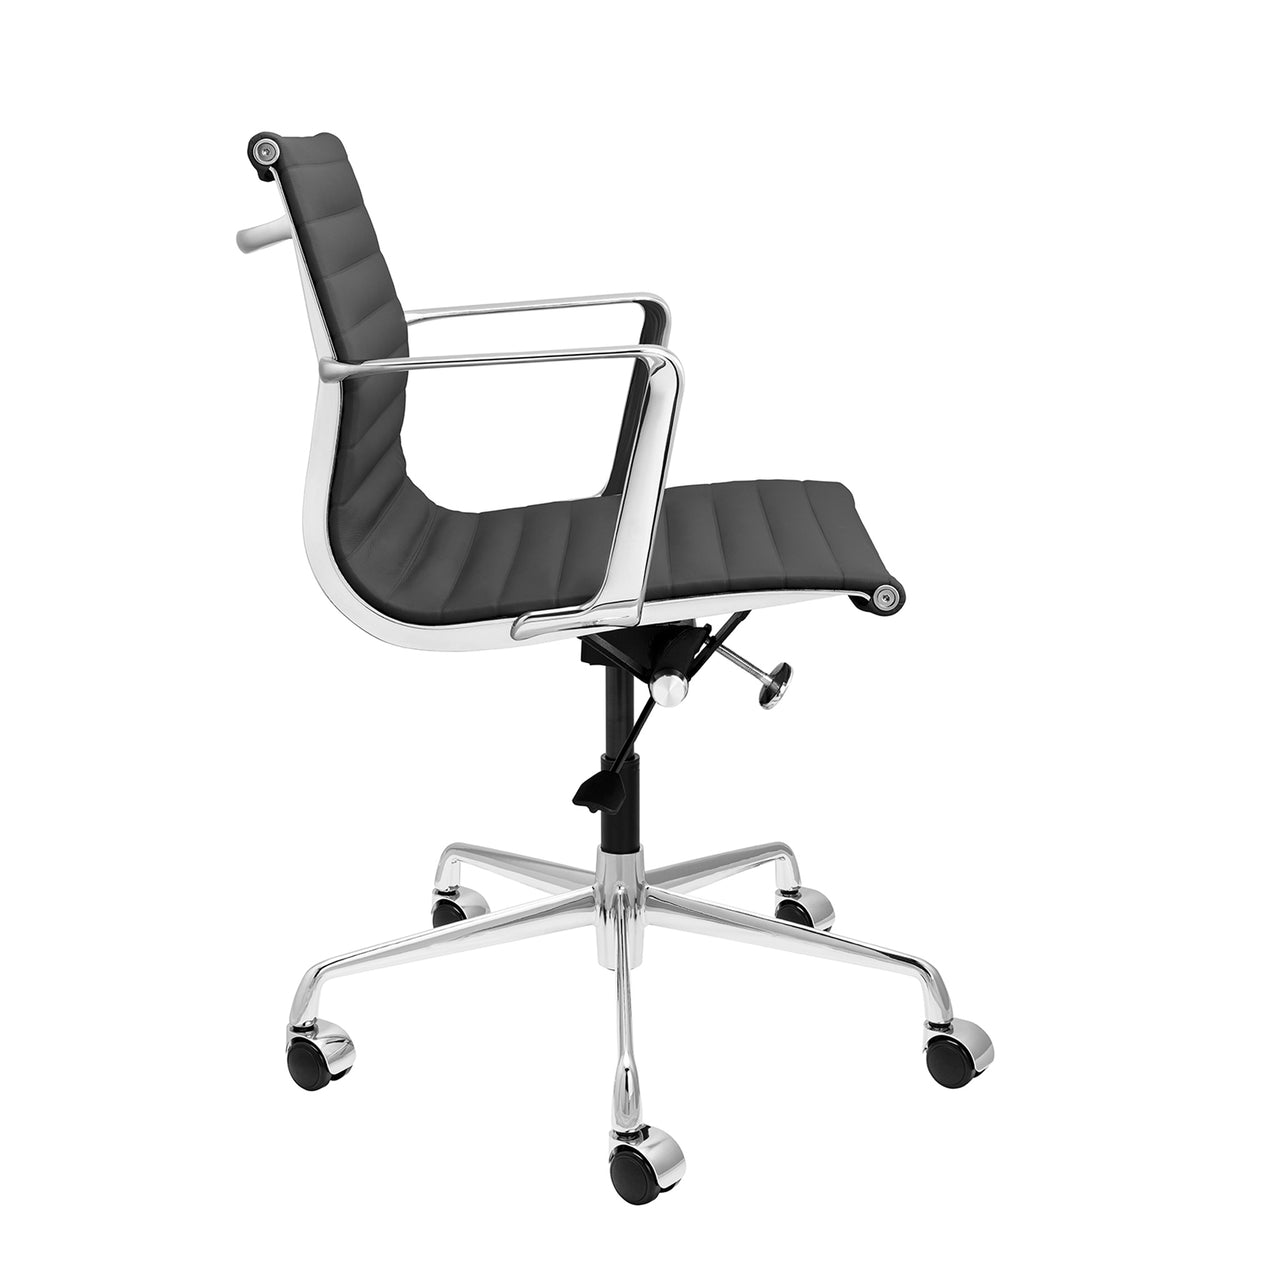 SOHO Pro Ribbed Management Chair (Dark Grey Italian Leather)